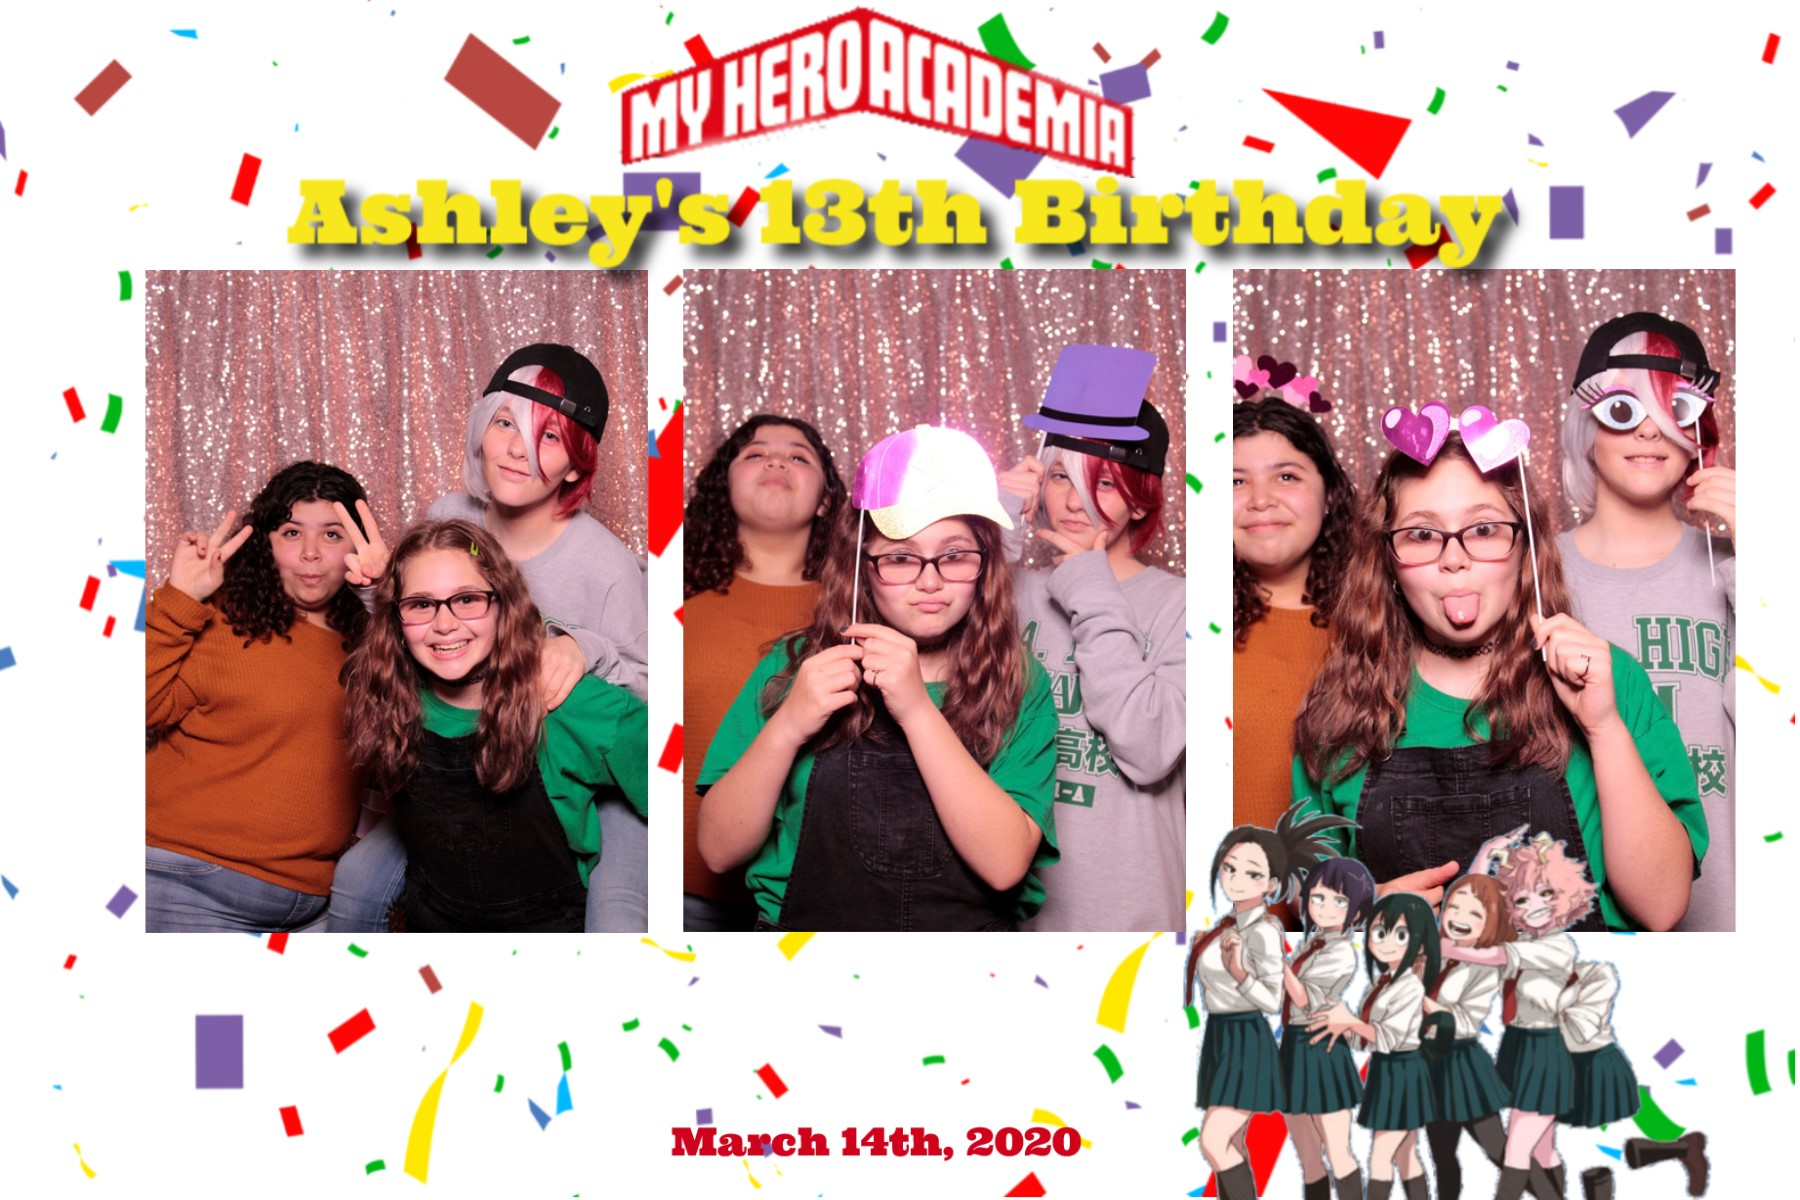 photobooth rental mirror booth encino